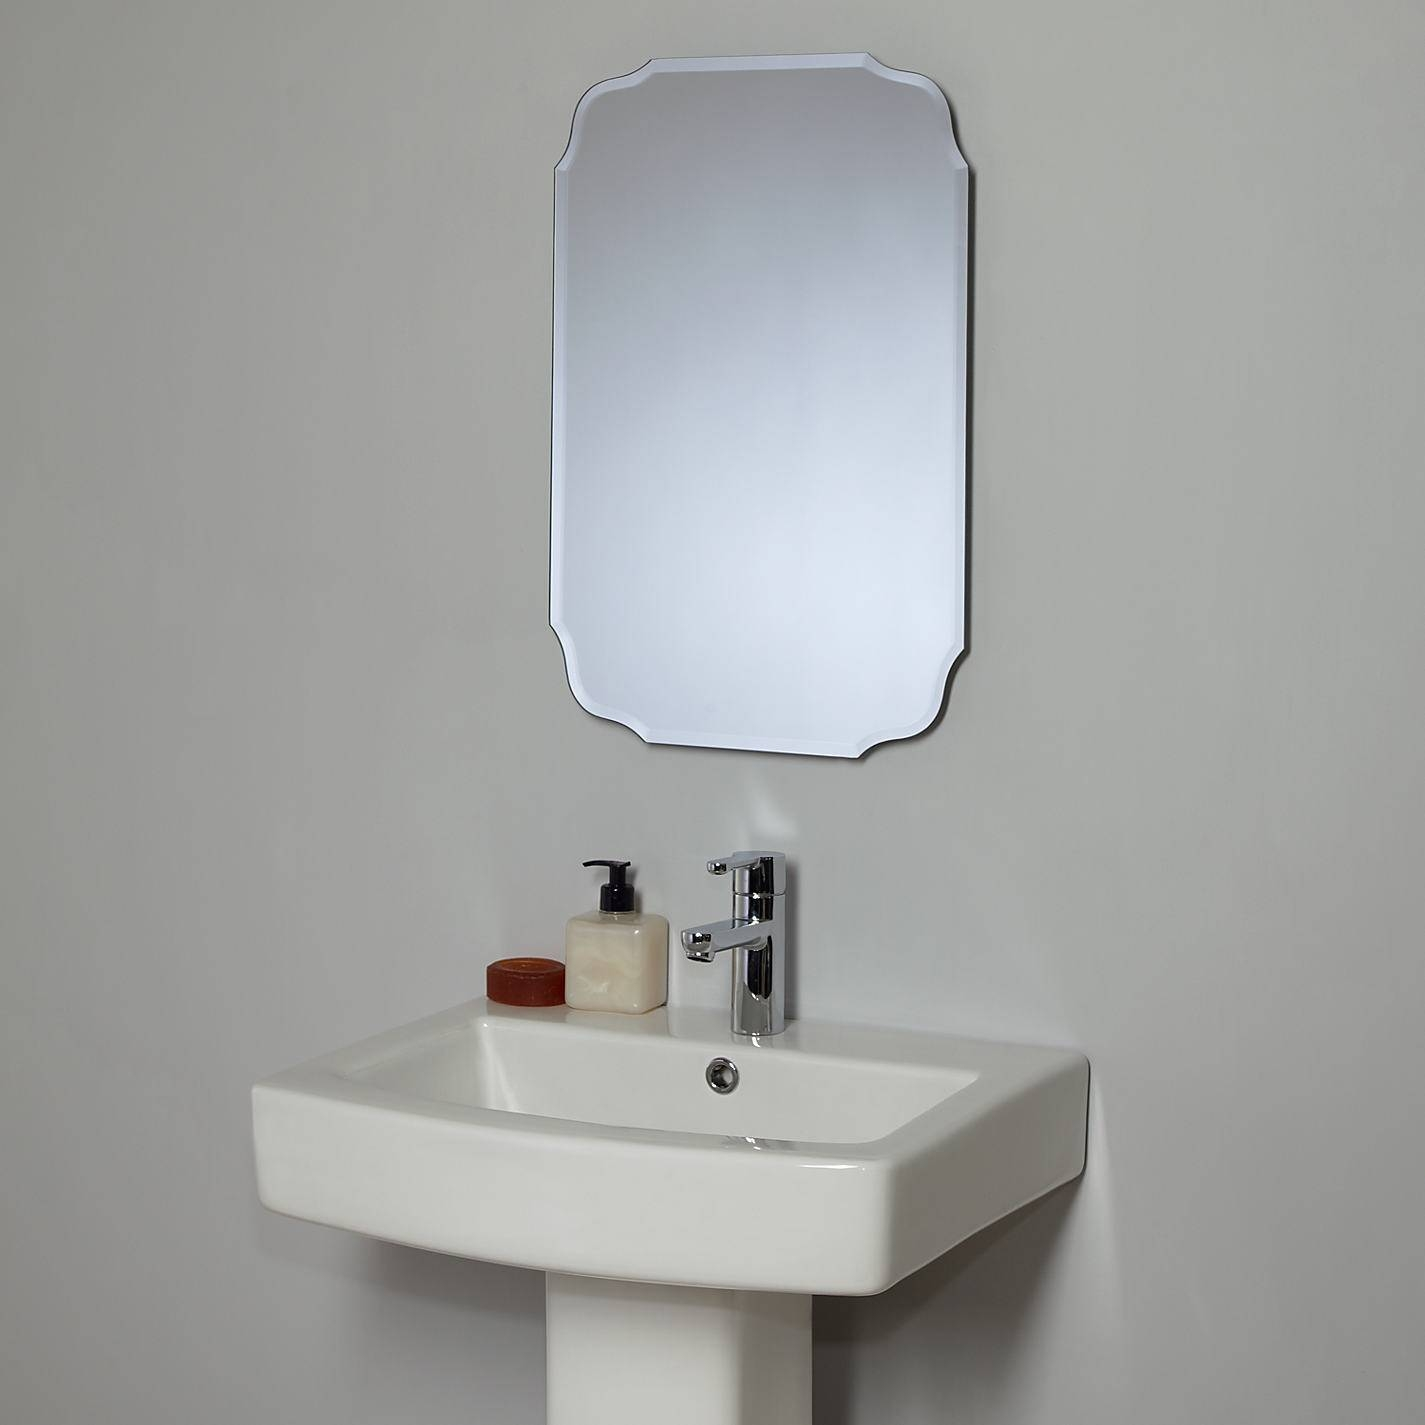 Vintage Wall Mirrors Ideas : Doherty House - A Beautiful Of in Vintage Bathroom Mirrors (Image 15 of 15)